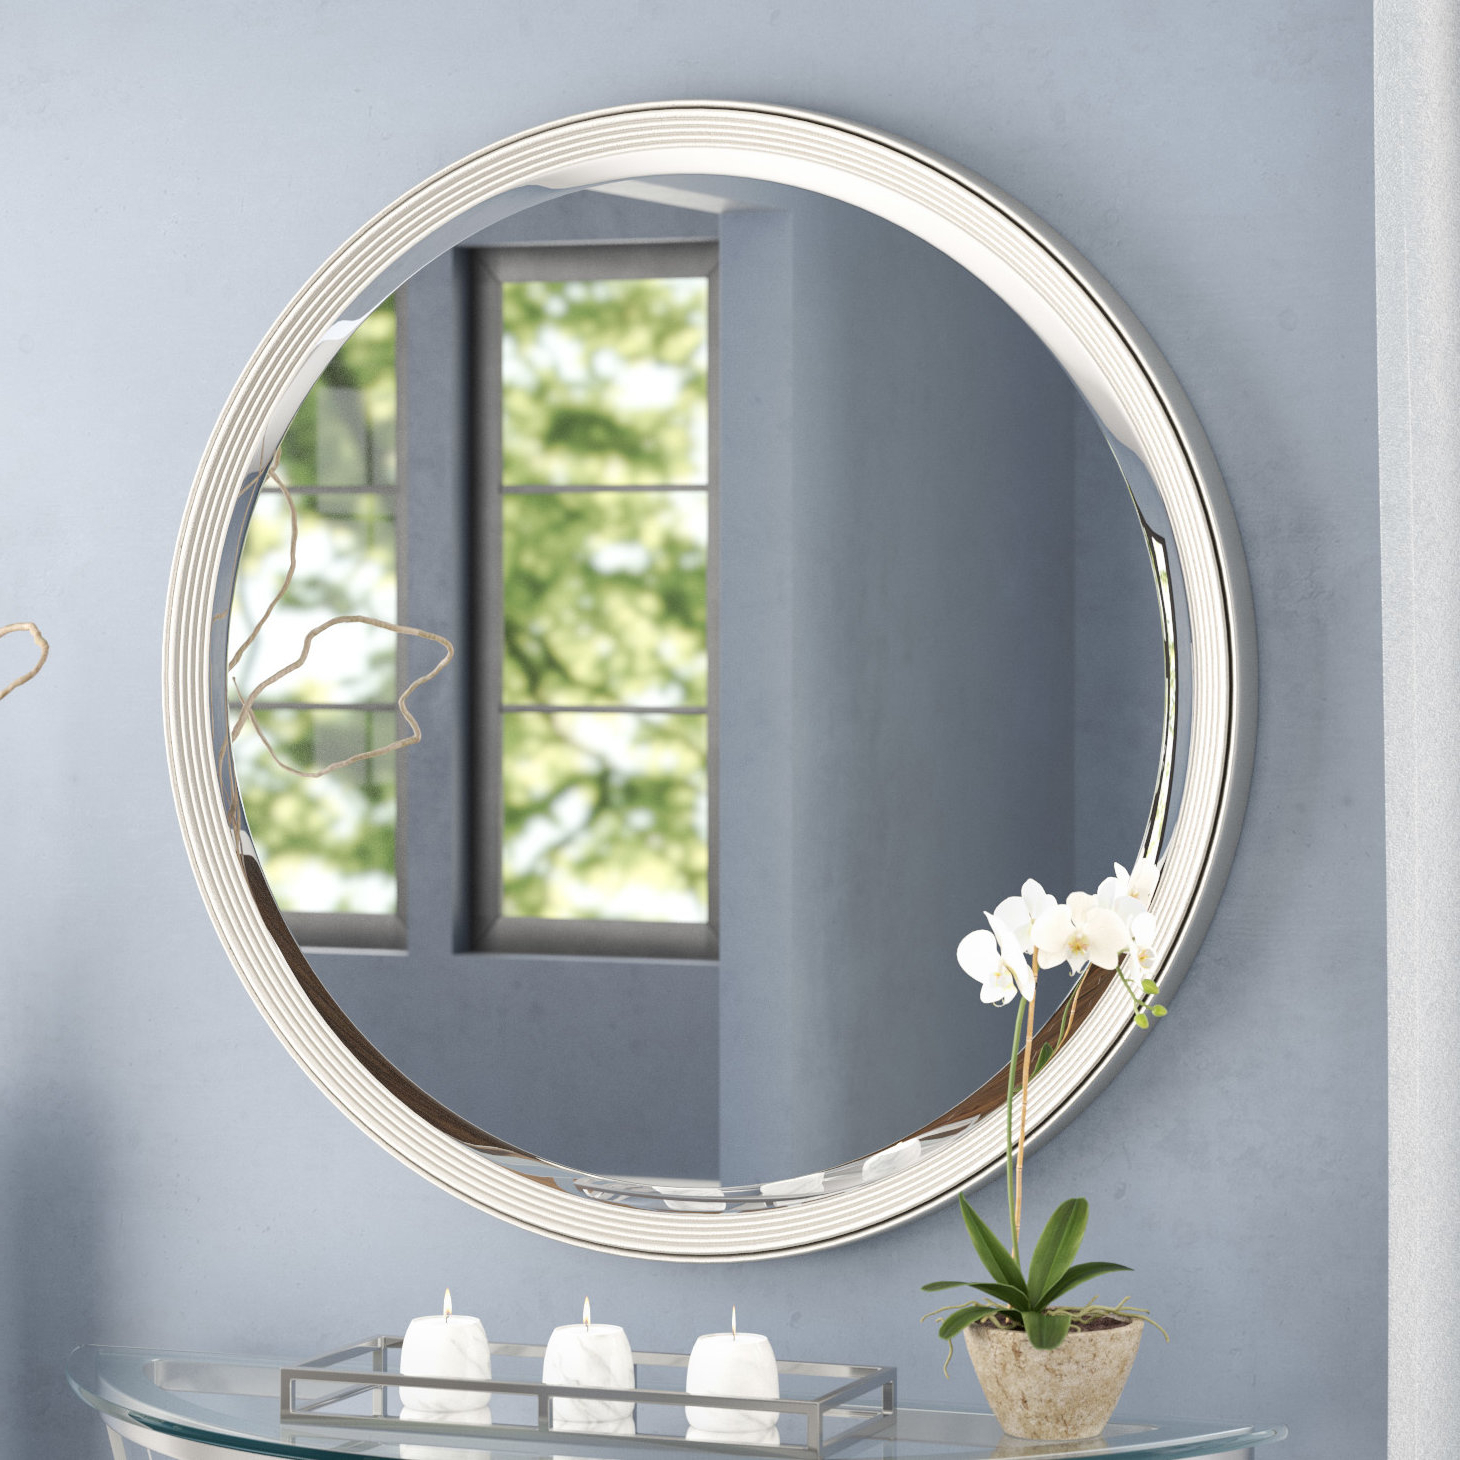 Widely Used Round Silver Accent Wall Mirror Intended For Round Silver Wall Mirrors (View 13 of 20)